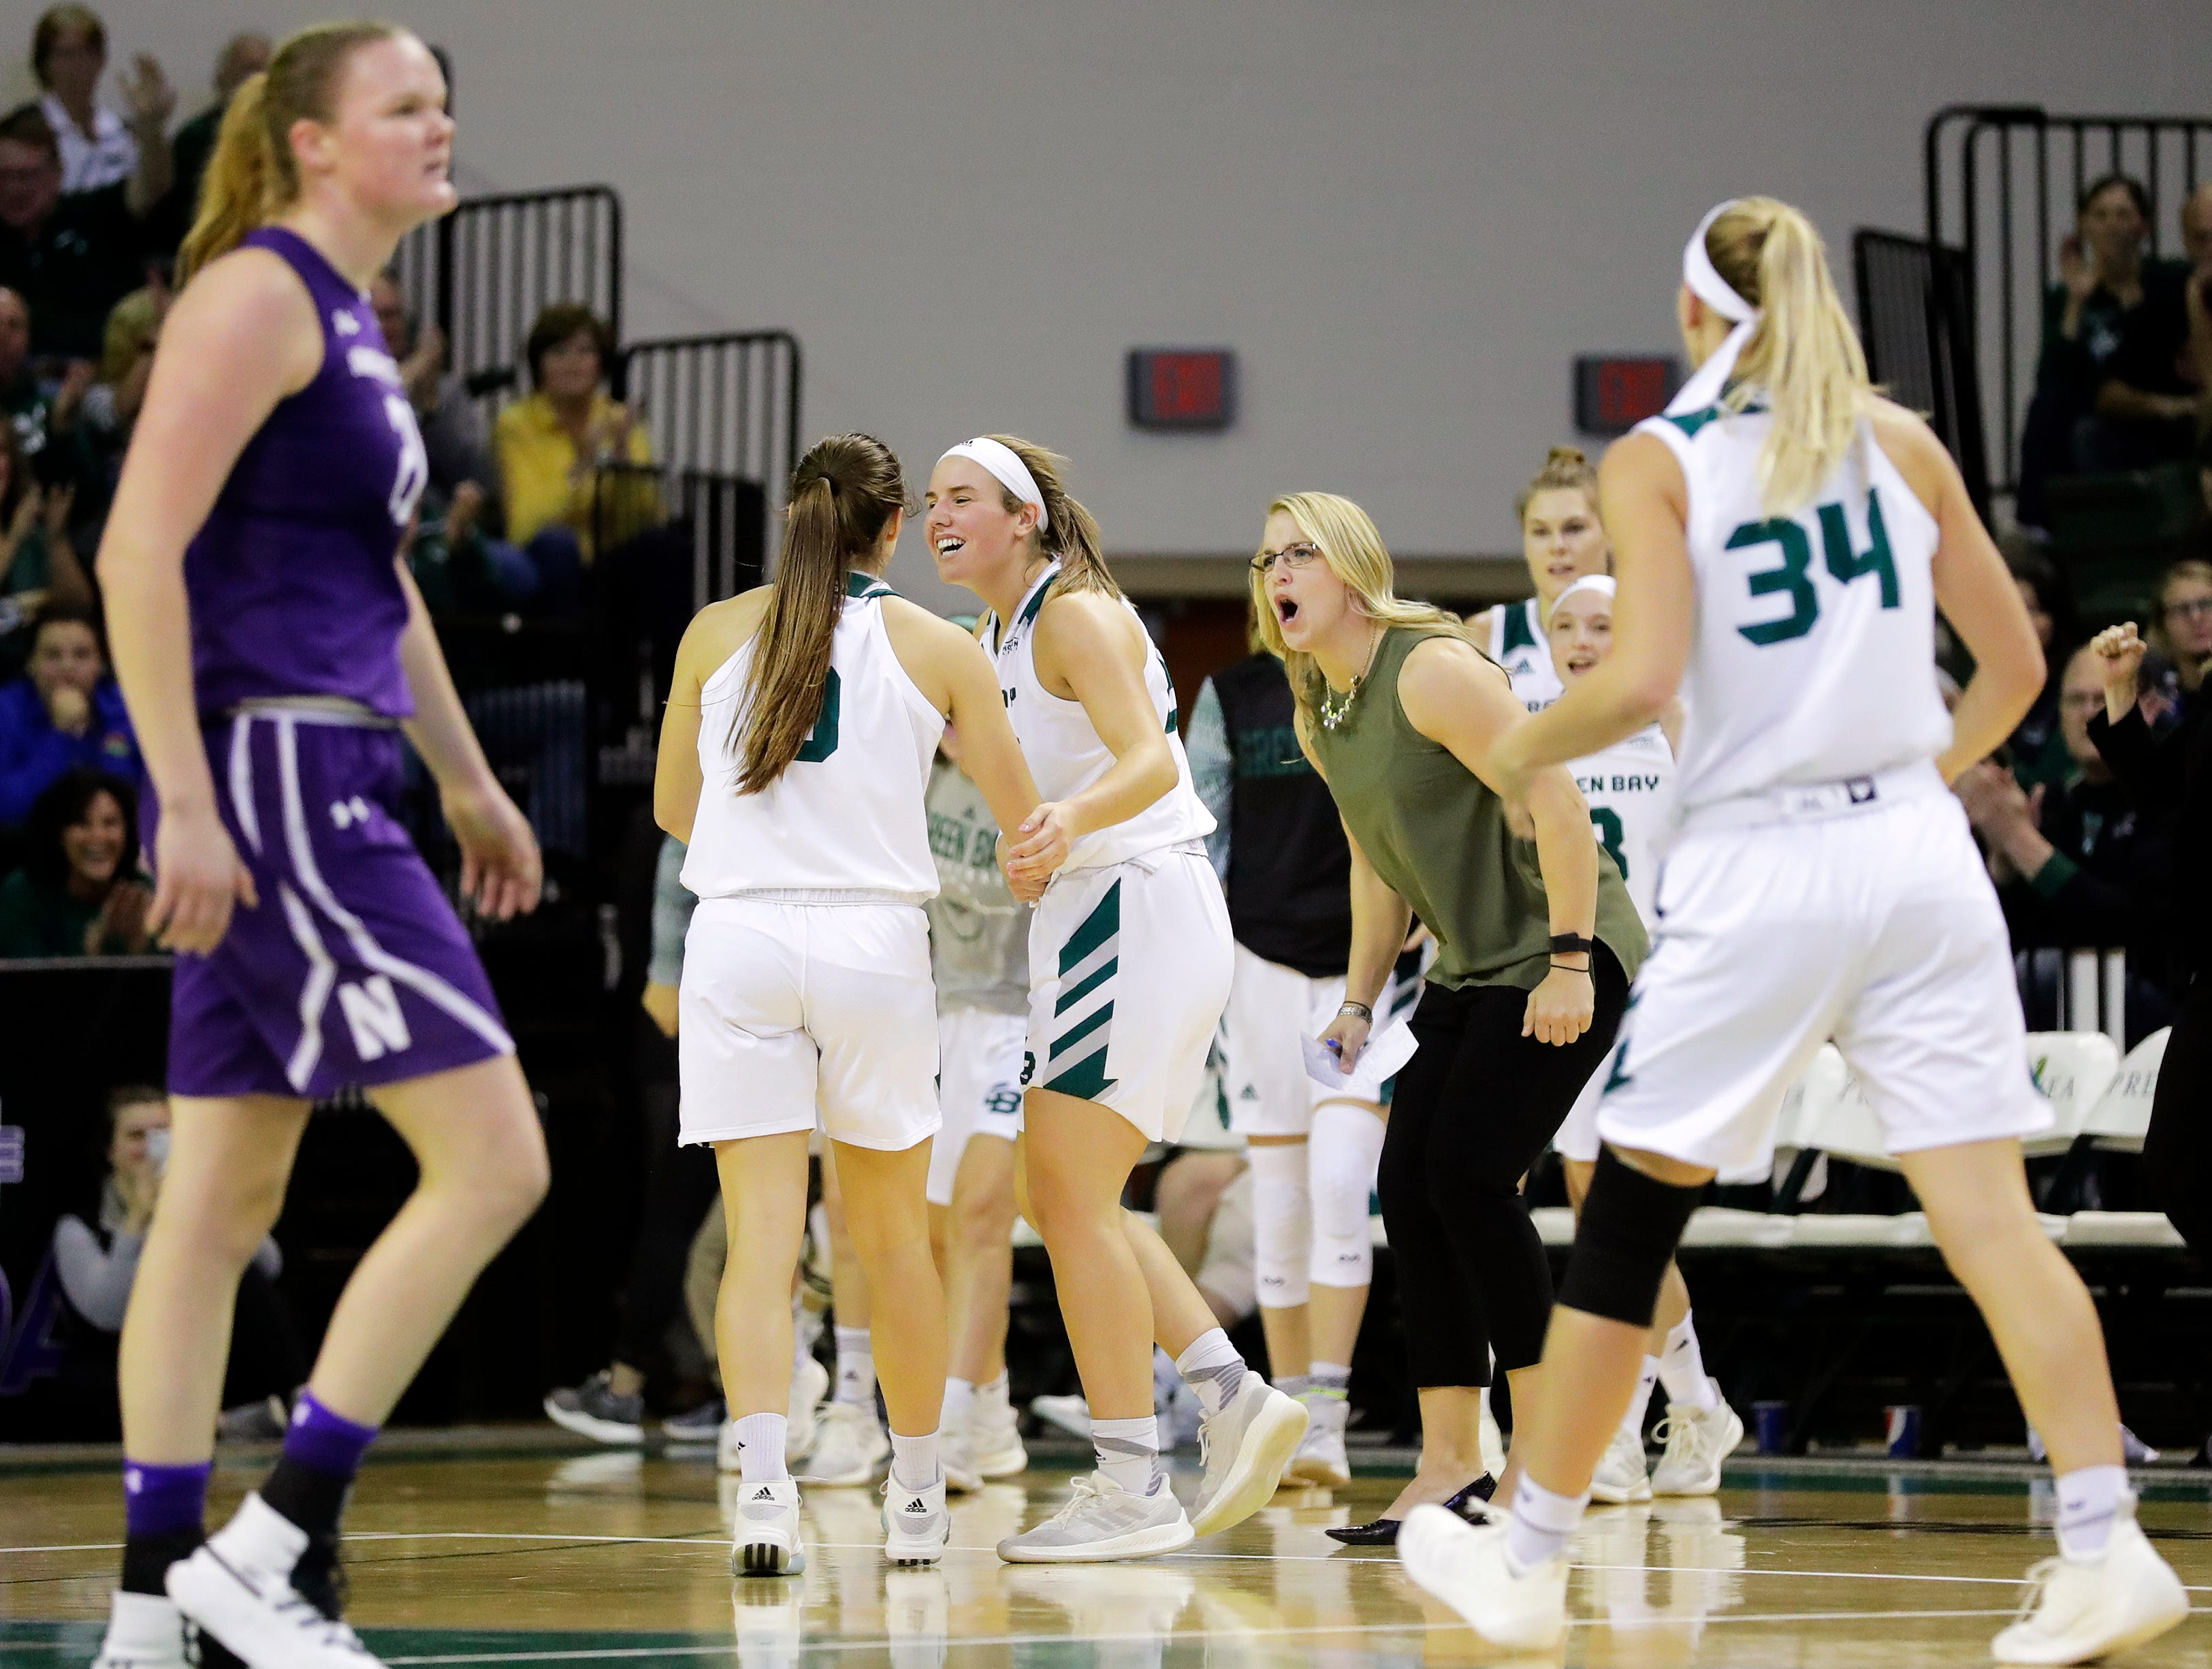 Green Bay Phoenix players celebrate with Green Bay Phoenix guard Hailey Oskey (0) after she hit a 3-pointer against the Northwestern Wildcats in a women's NCAA basketball game at the Kress Center on Tuesday, November 6, 2018 in Green Bay, Wis.